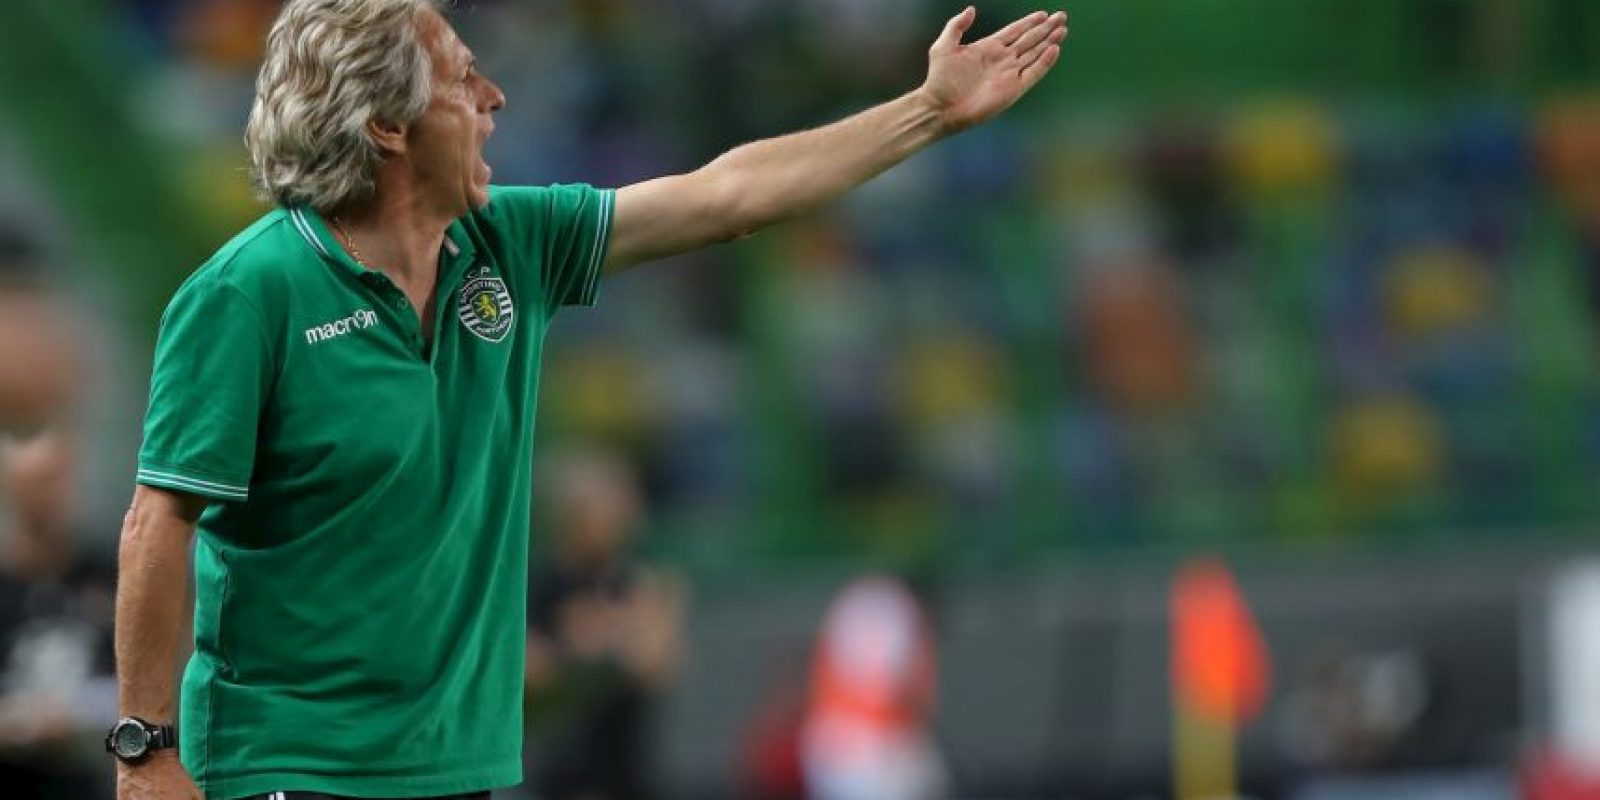 10.-Jorge Jesus (Sporting Lisboa) Foto: Getty Images